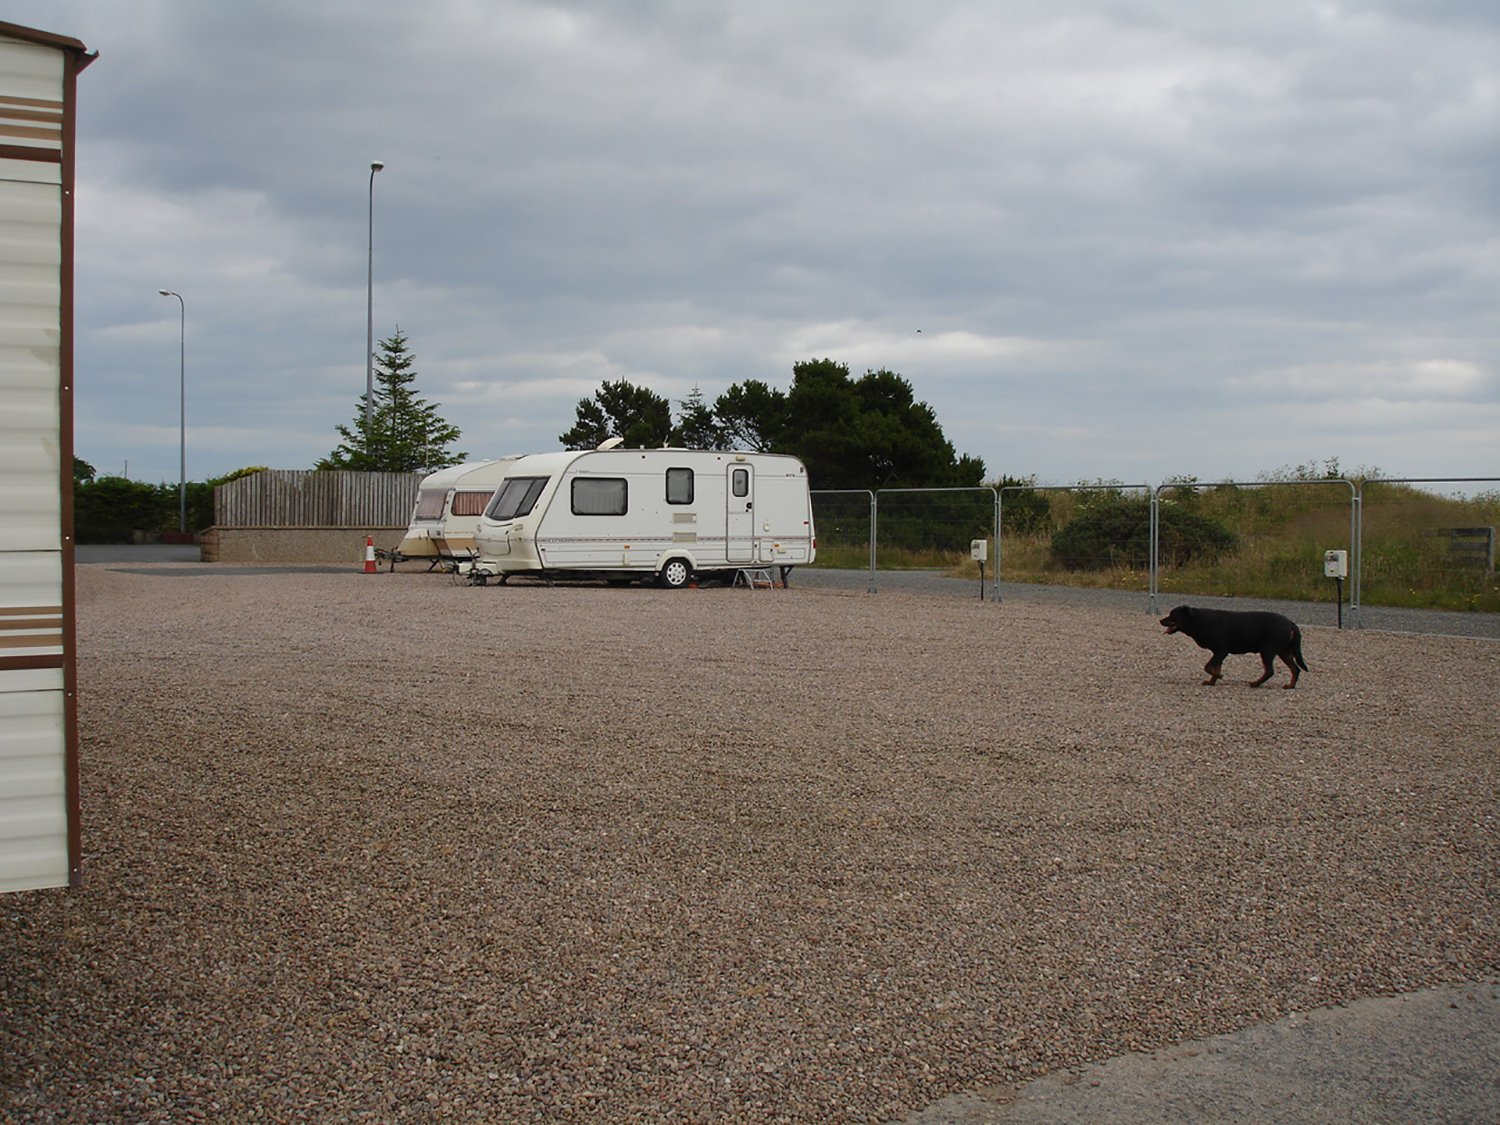 empty parking lot for caravan and a dog